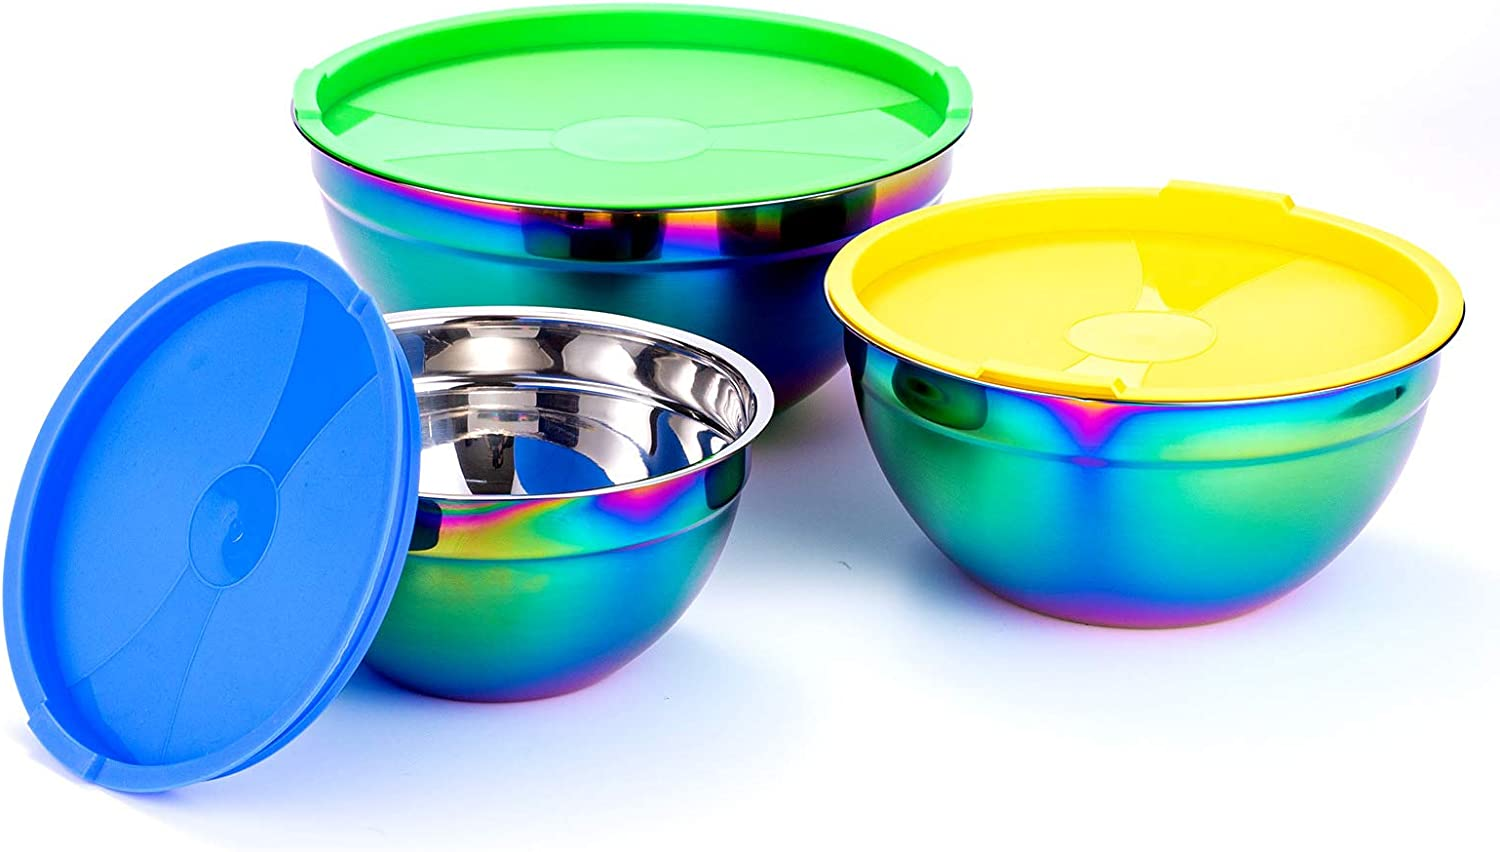 ROYDOM Mixing Bowl Set with Lid, Stainless Steel Salad Bowls 3 Piece Rainbow Nesting Bowl for Prep Cooking, Baking, Kitchen Food Preparation, Fruit Cake Serving Storage Colorful Bowls 2.11 3.6 5.5 Qt